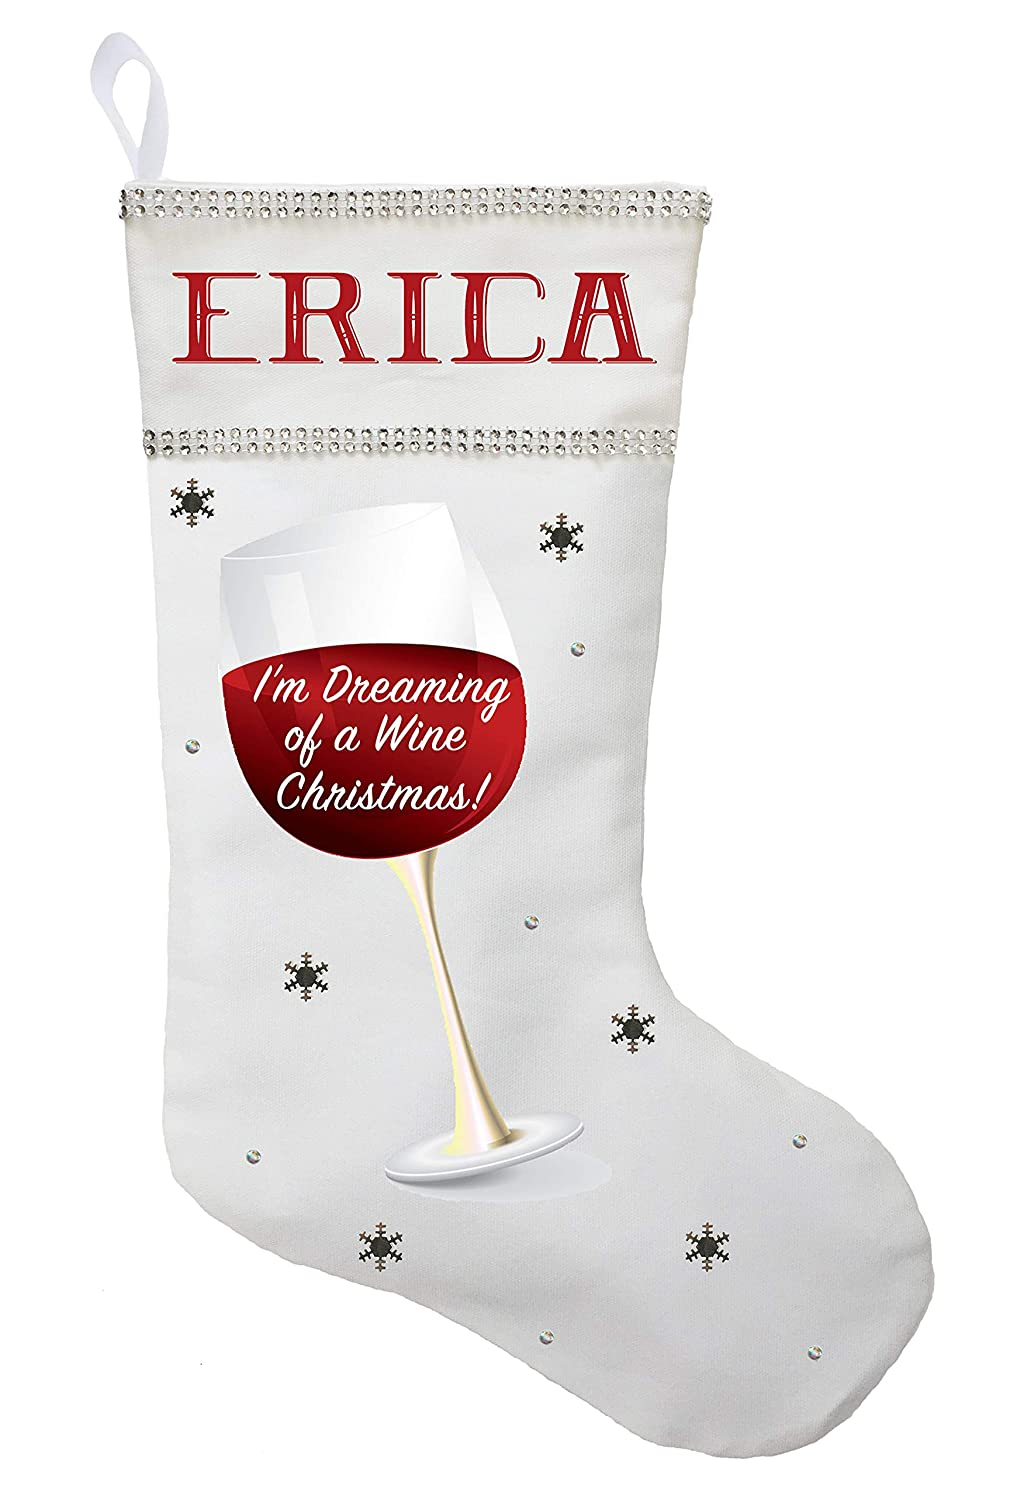 Wine Christmas Stocking, I'm Dreaming of a Wine Christmas Stocking, Custom Wine Christmas Present